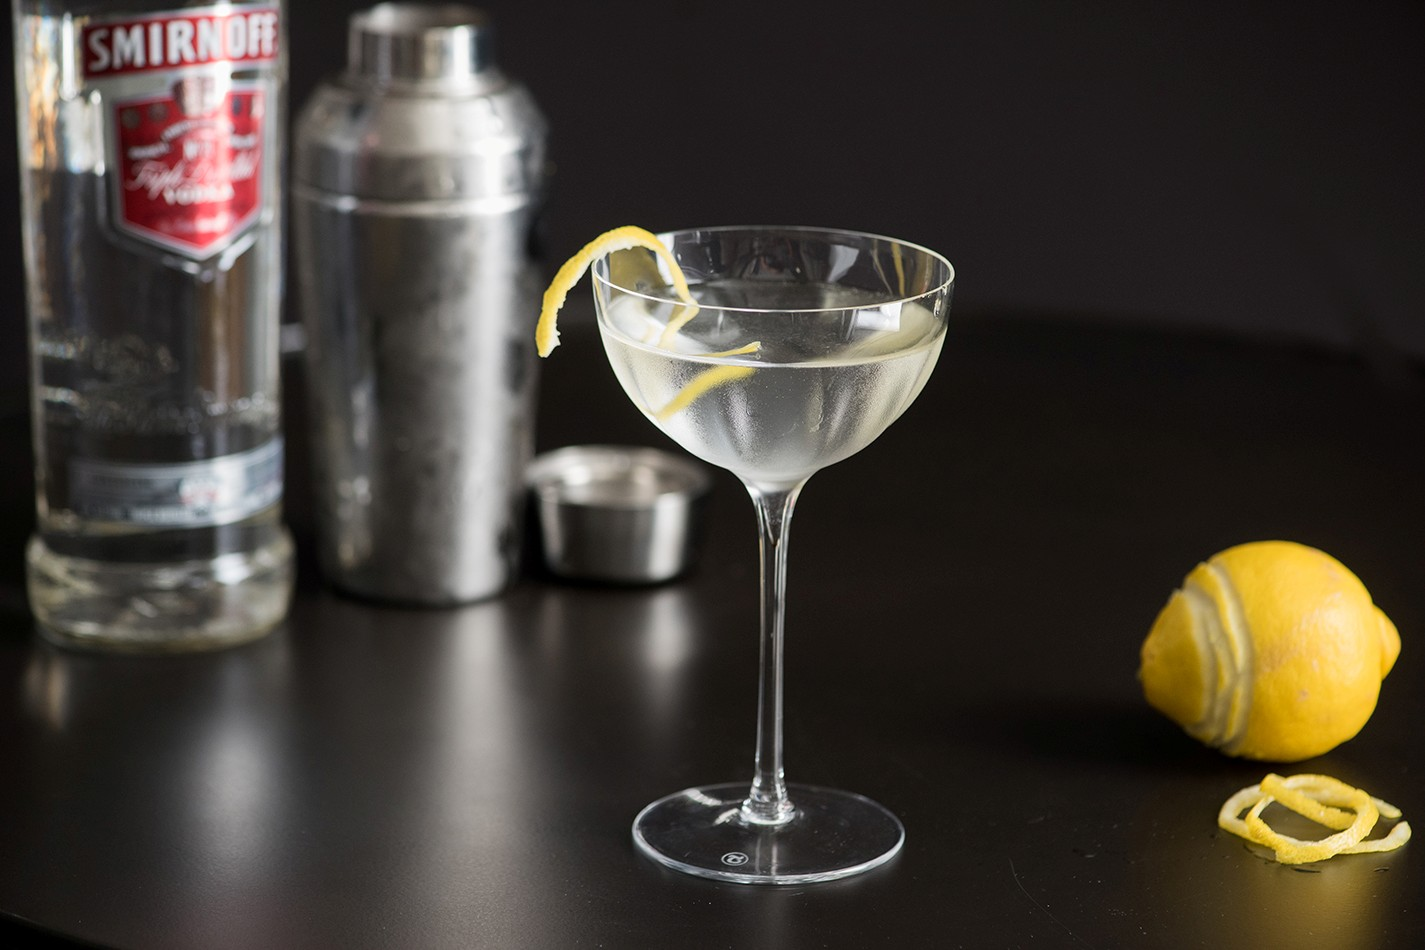 The martini is perhaps the most classic of classic exsanew-49rs8091.ga Ernest Hemingway to Winston Churchill to James Bond, the simple drink has been quaffed by famous folks for generations now.